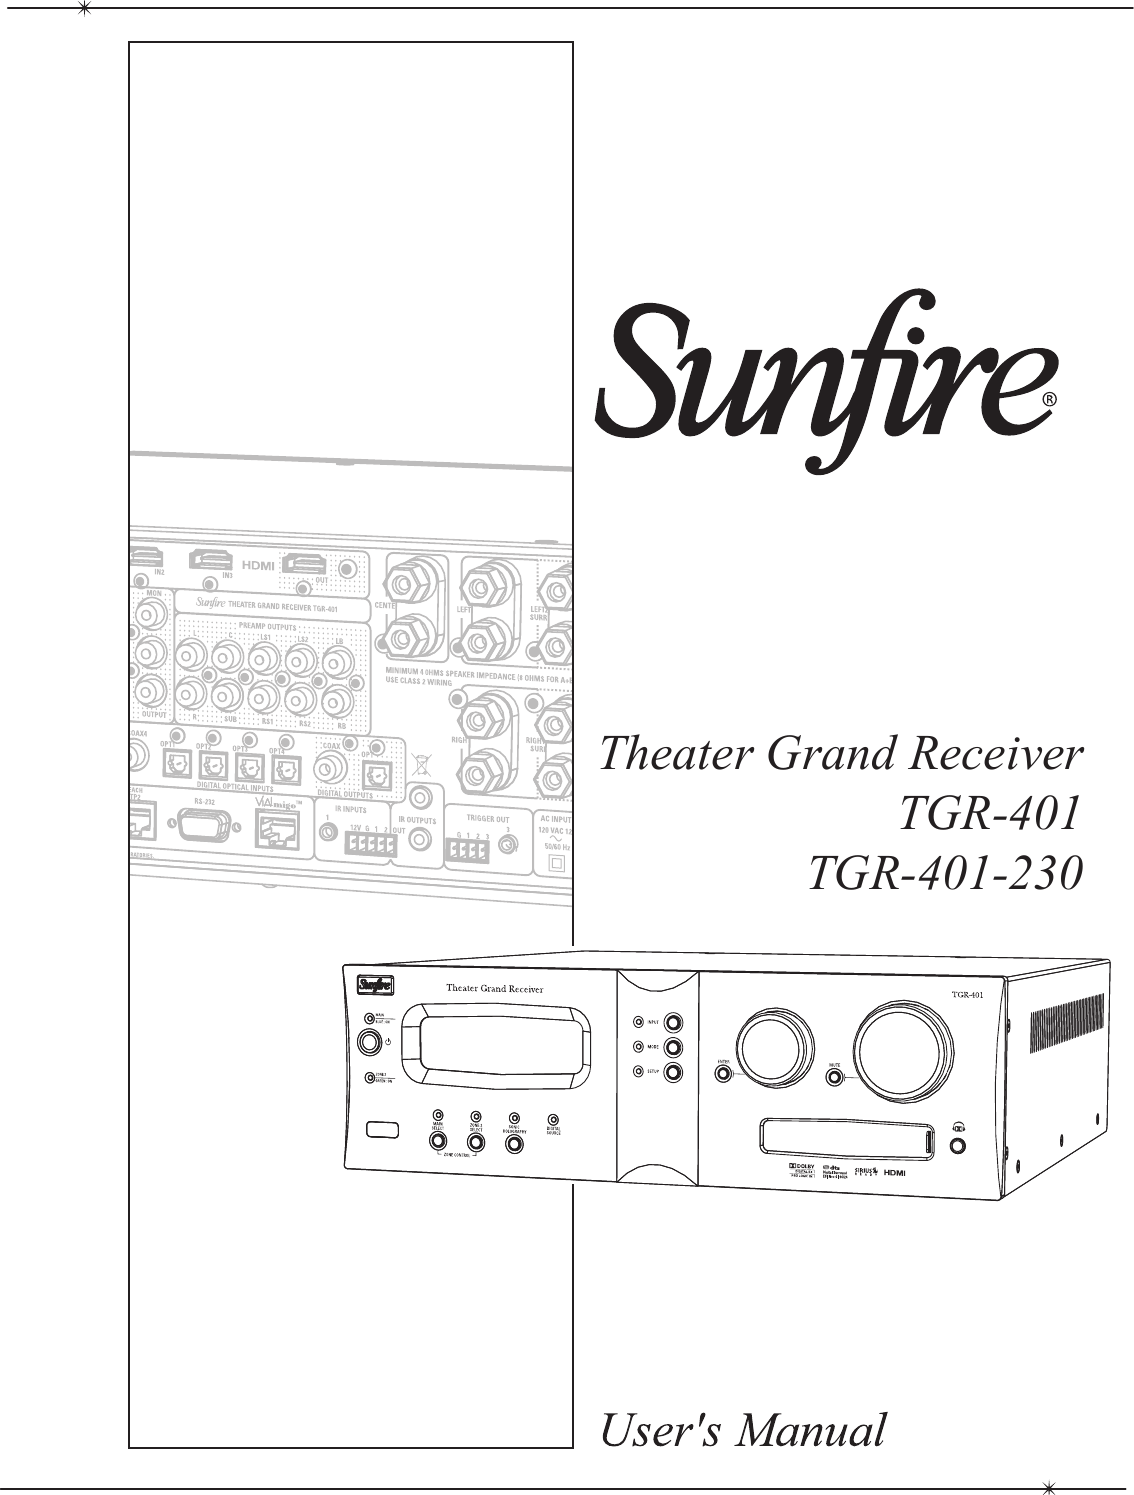 Sunfire Theater Grand Receiver Tgr 401 230 Users Manual Microlab M 280 Circuit Diagram